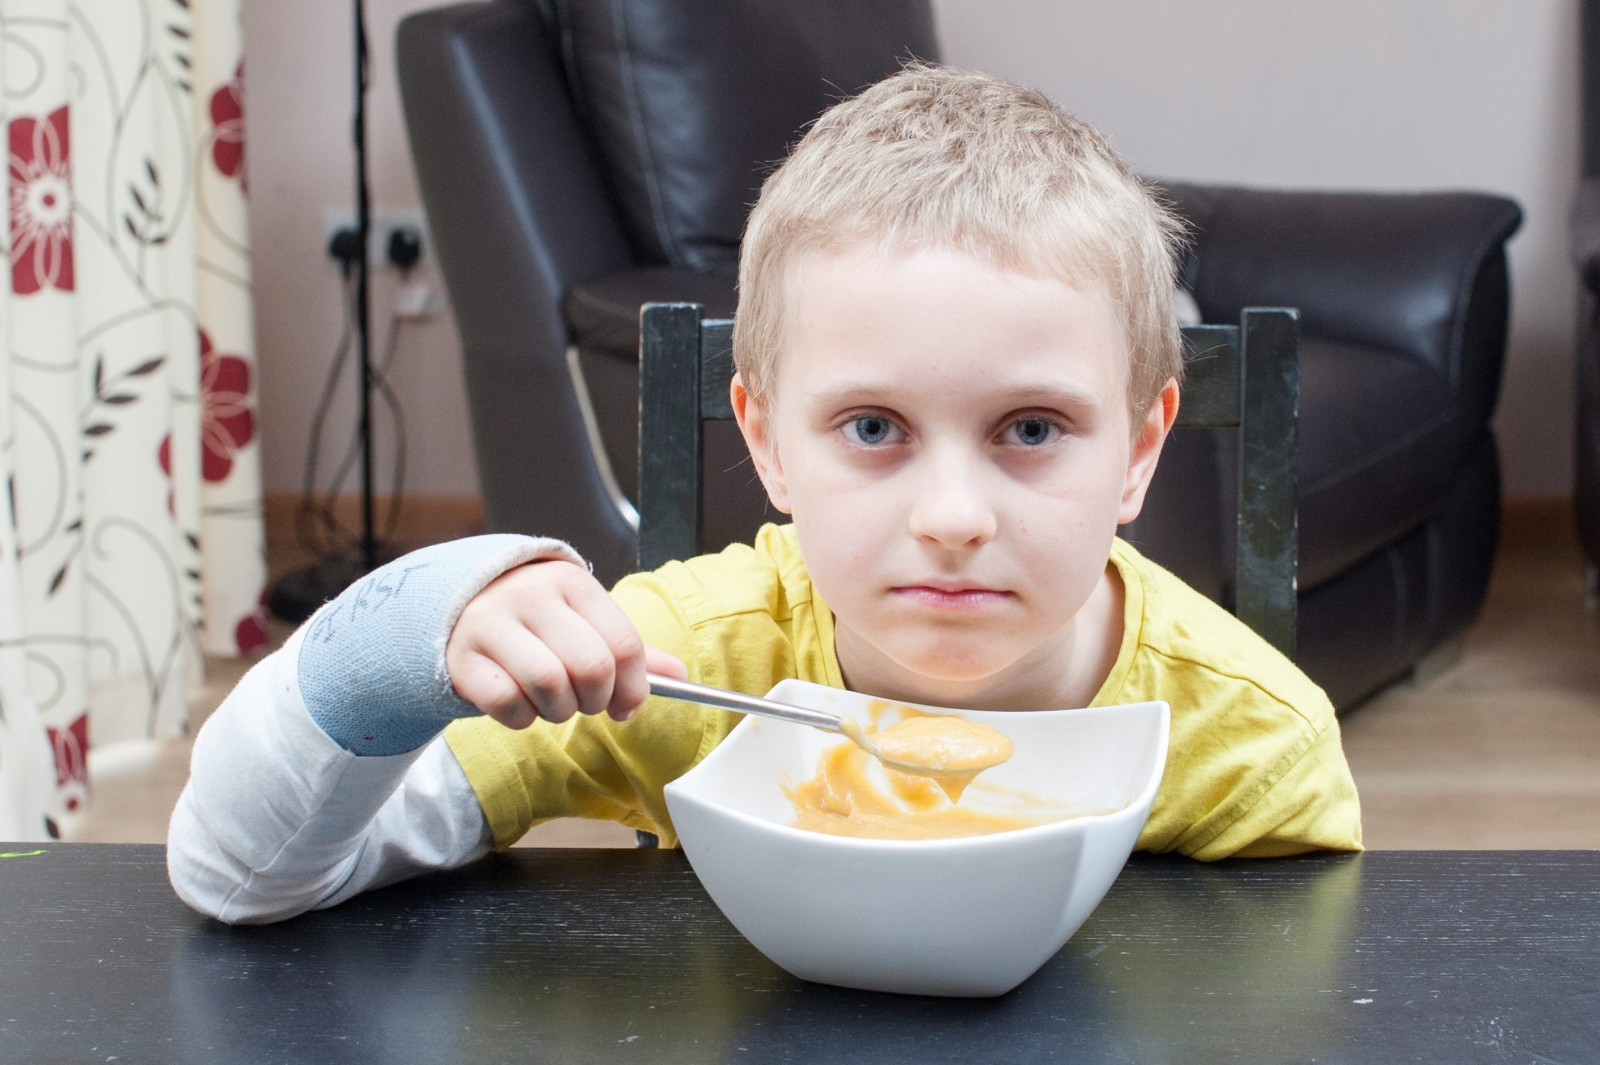 Find out what happened to this seven year old that left him terrified of food